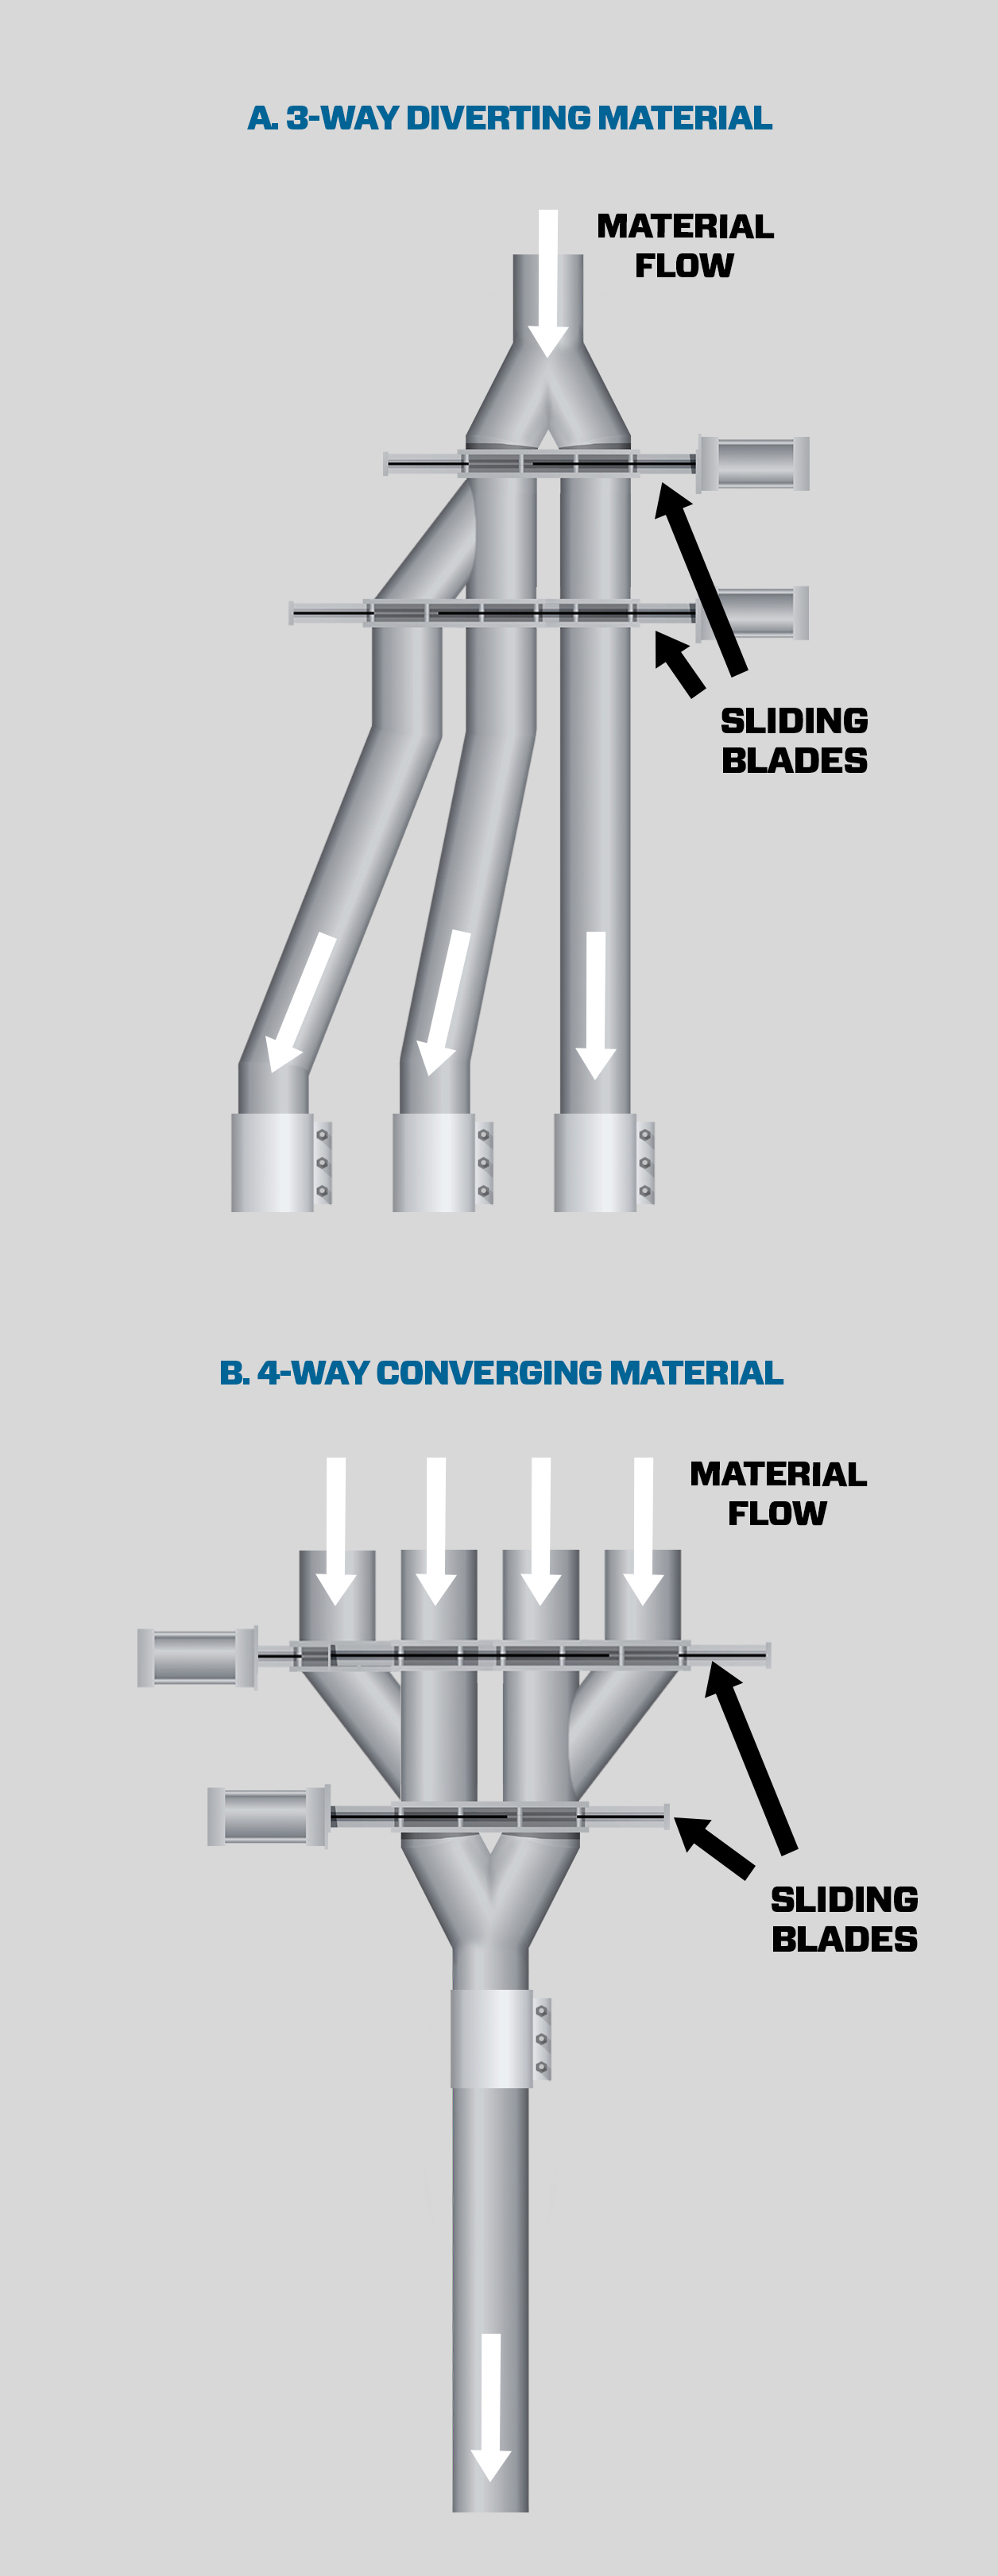 Vortex Factors To Consider When Selecting A Diverter